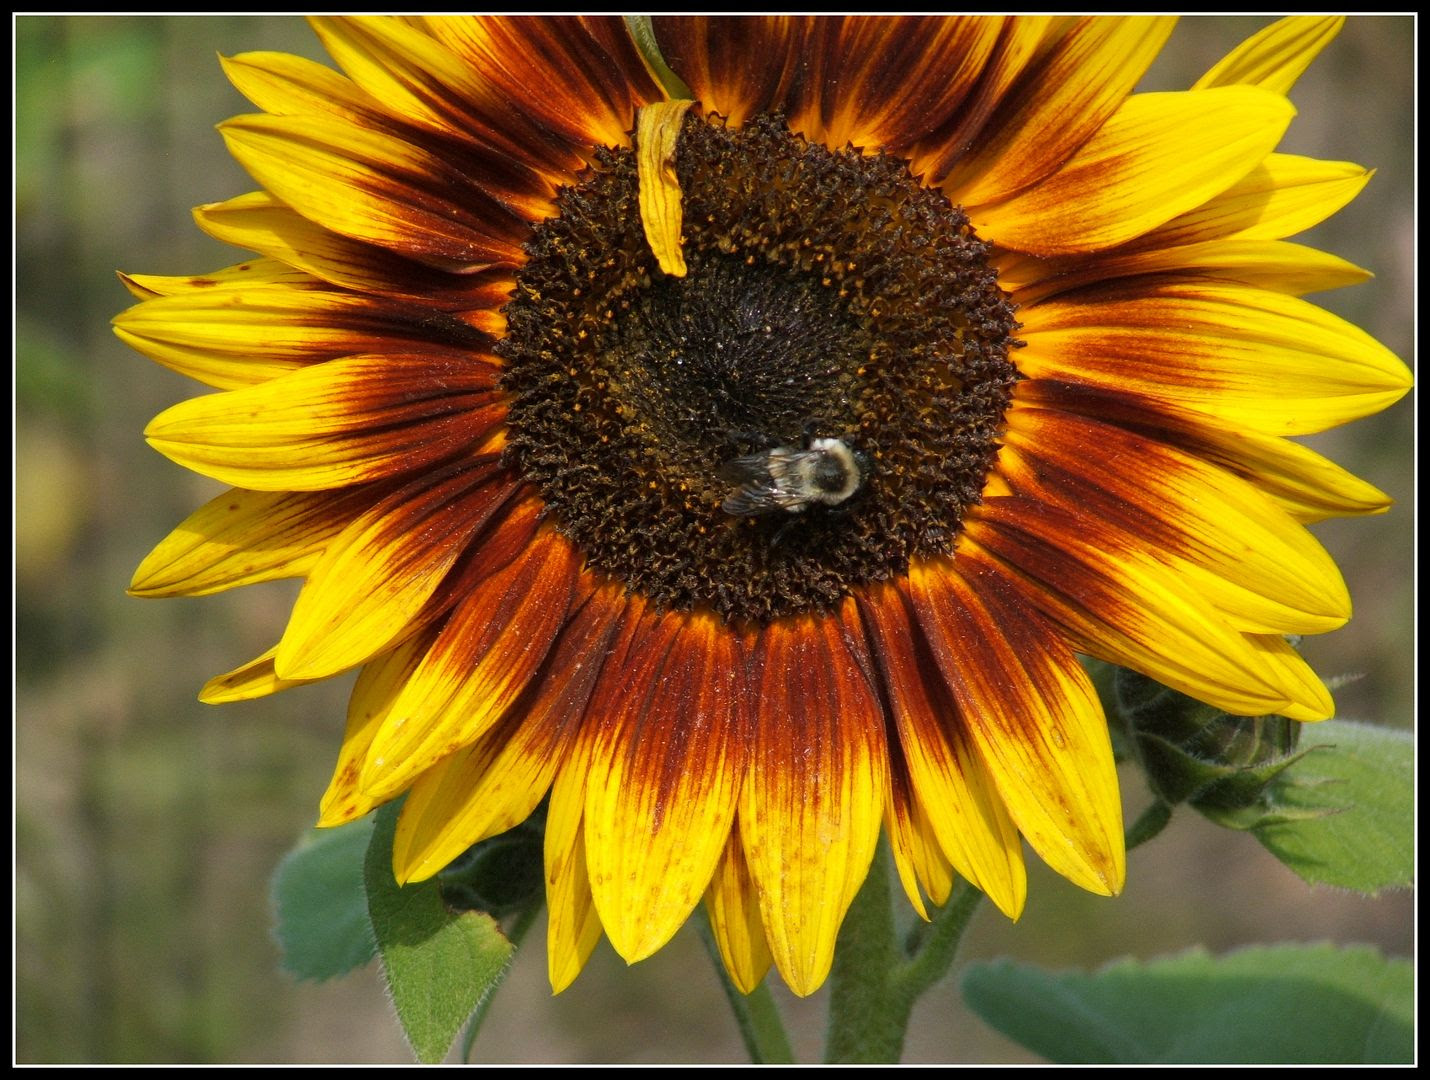 by Angie Ouellette-Tower for http://www.godsgrowinggarden.com/ photo DSCF9047_zps9dbf7vgl.jpg